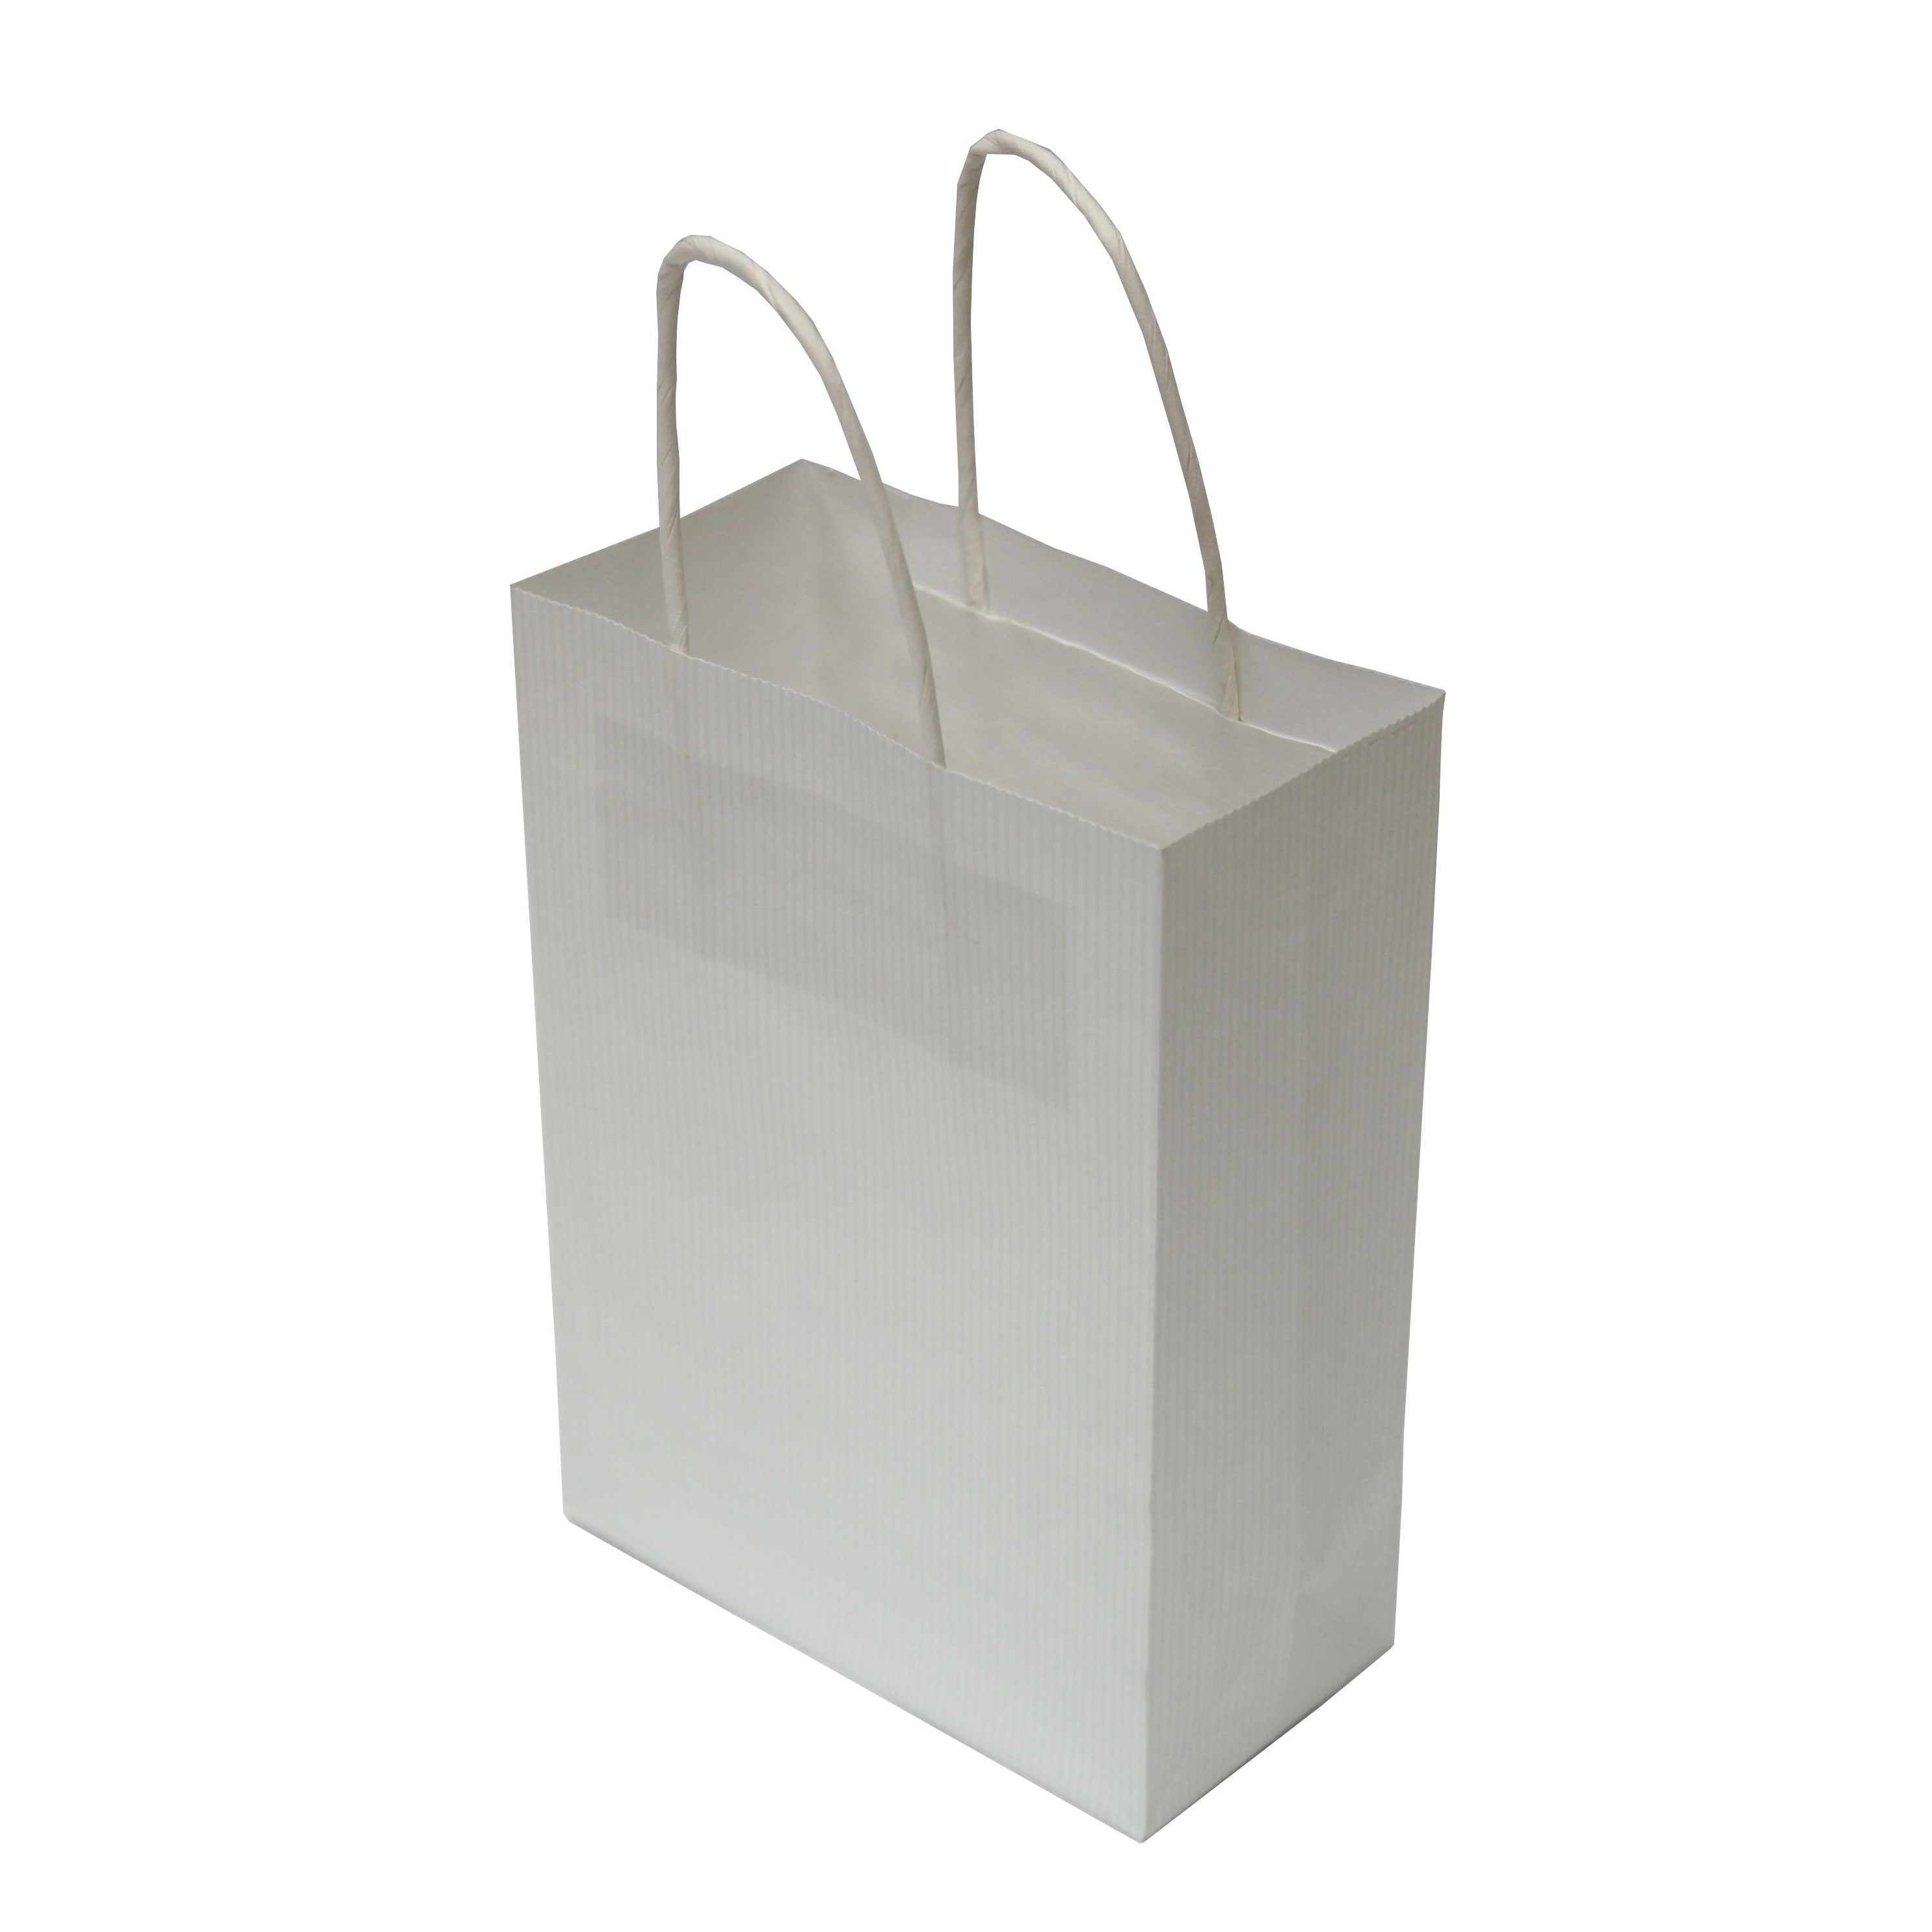 WHITE TWISTED HANDLES PAPER BAG (WITH BASE CARD)